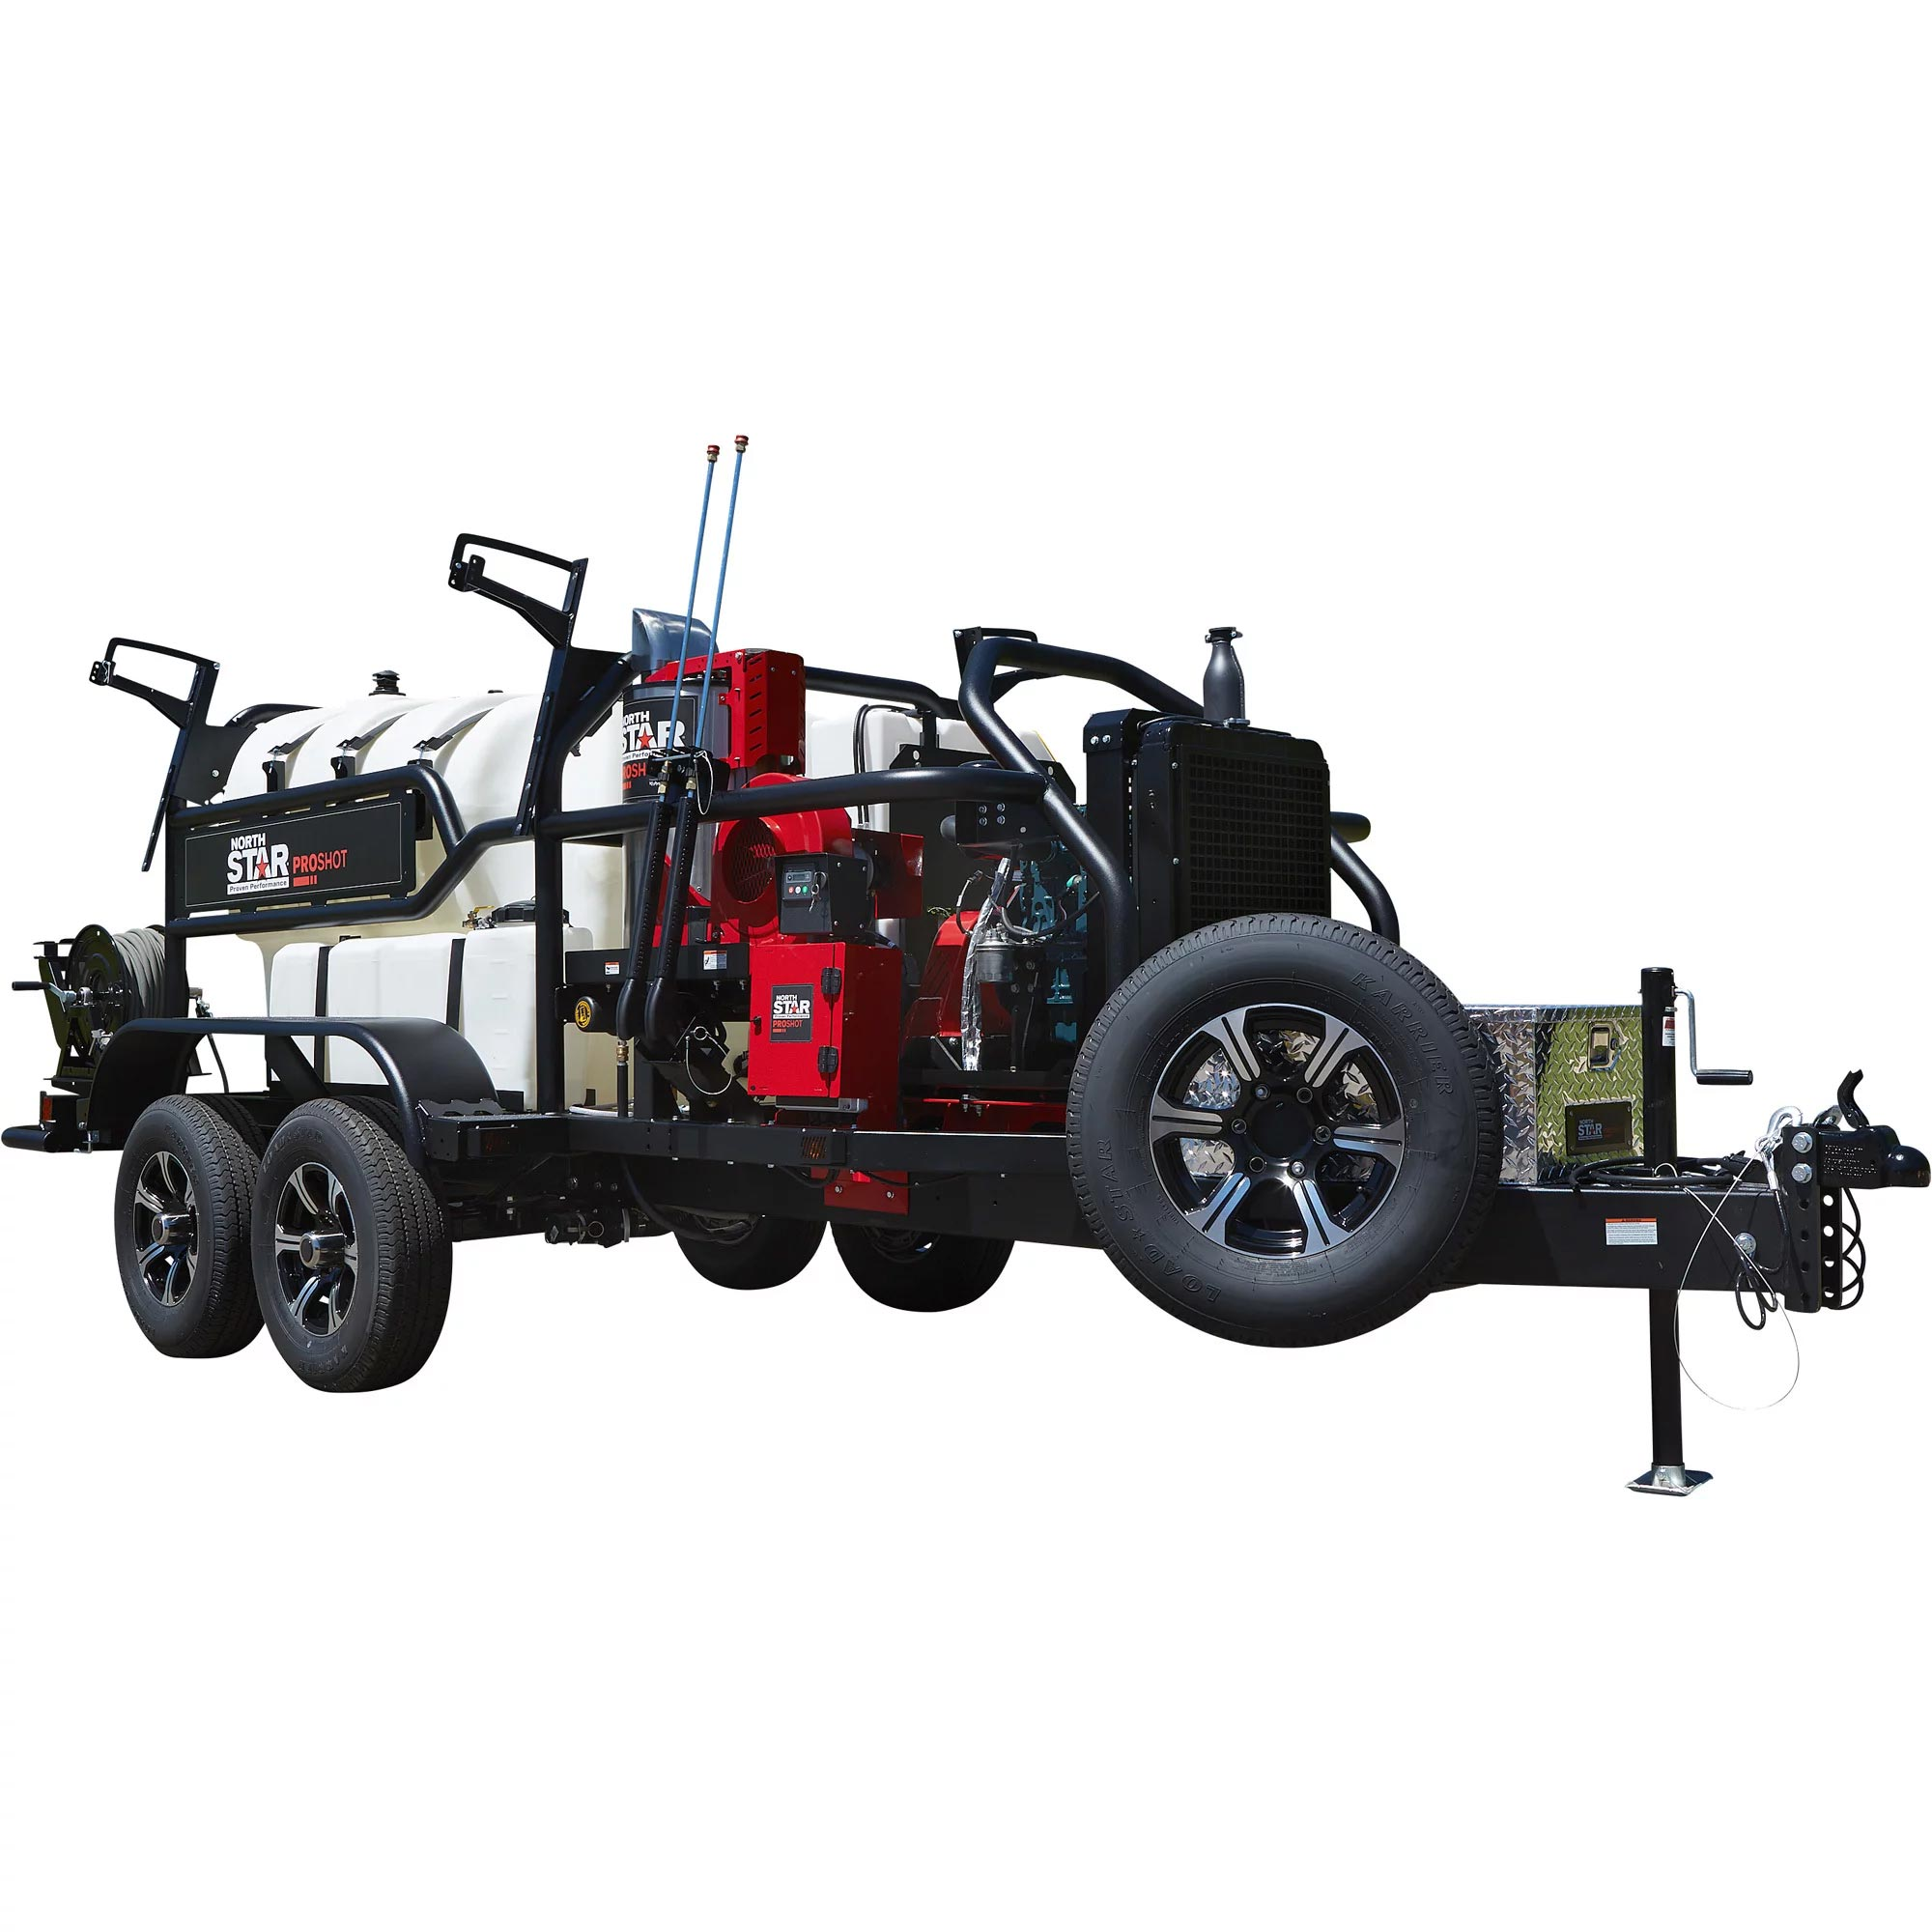 NorthStar 157574 ProShot Hot Water Commercial Pressure Washer Trailer — 3000 PSI, 8.0 GPM, 2 Spray Guns/Lances, Diesel Kubota Engine, 600-Gal. Water Tank